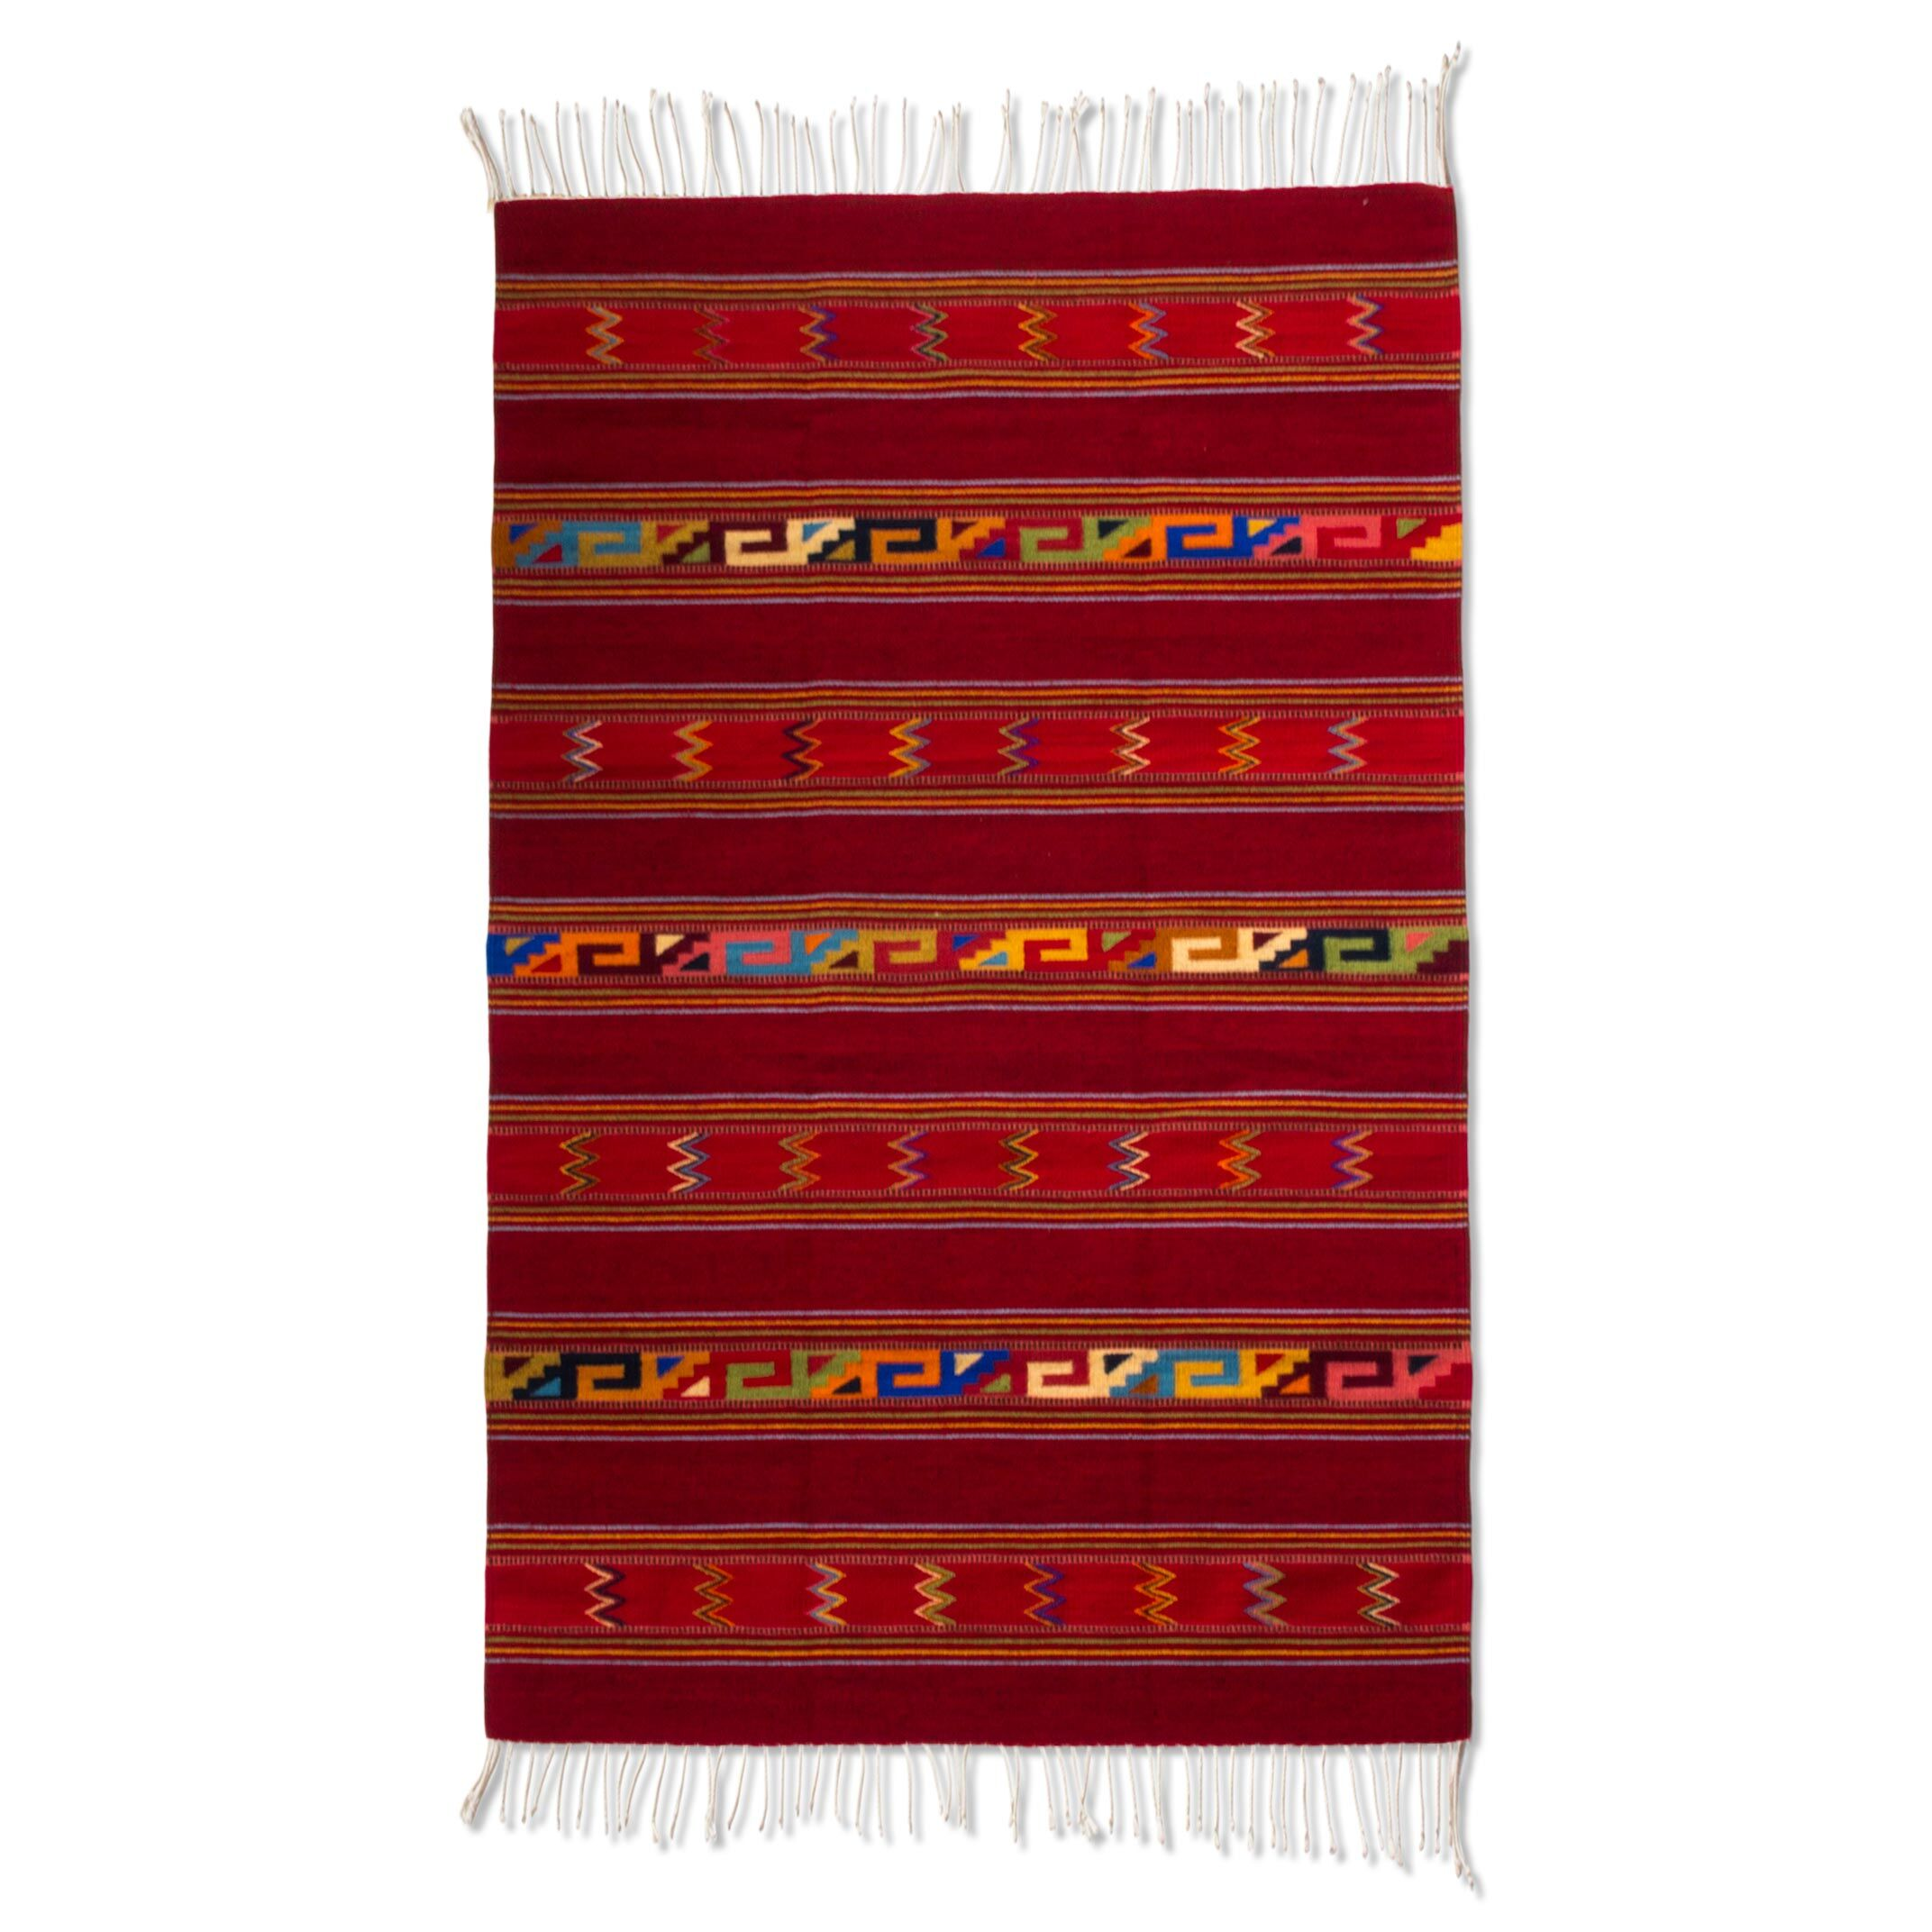 Fair Trade Naturally Dyed Striped Crimson Expertly Hand Woven Mexican Wool Home Decor Area Rug